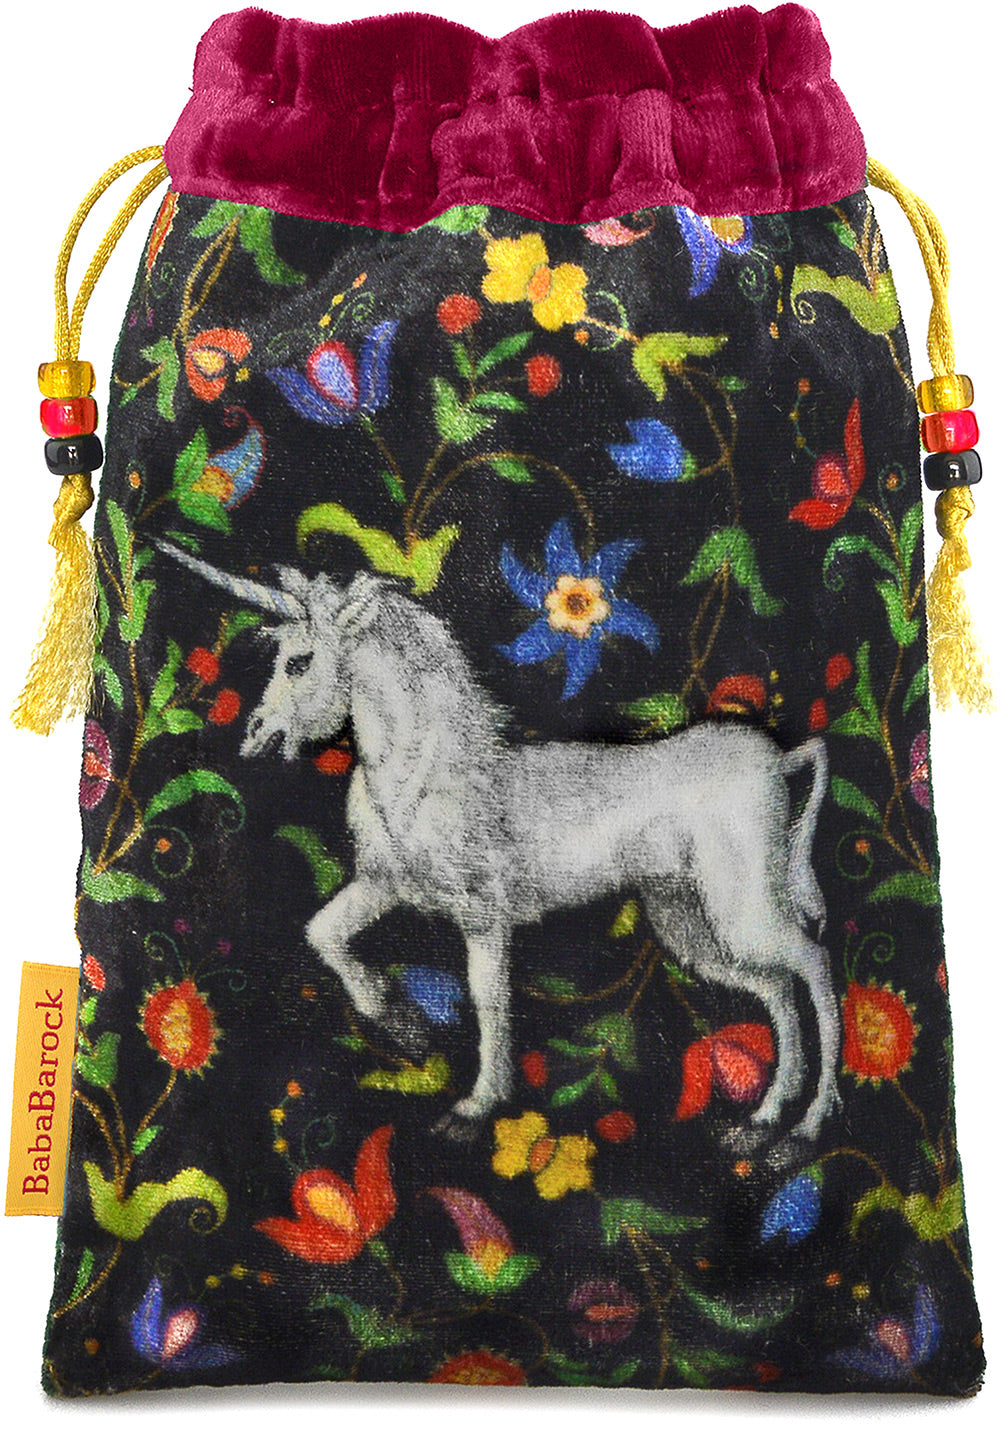 The Unicorn bag. Printed on silk velvet. Burgundy red velvet version.